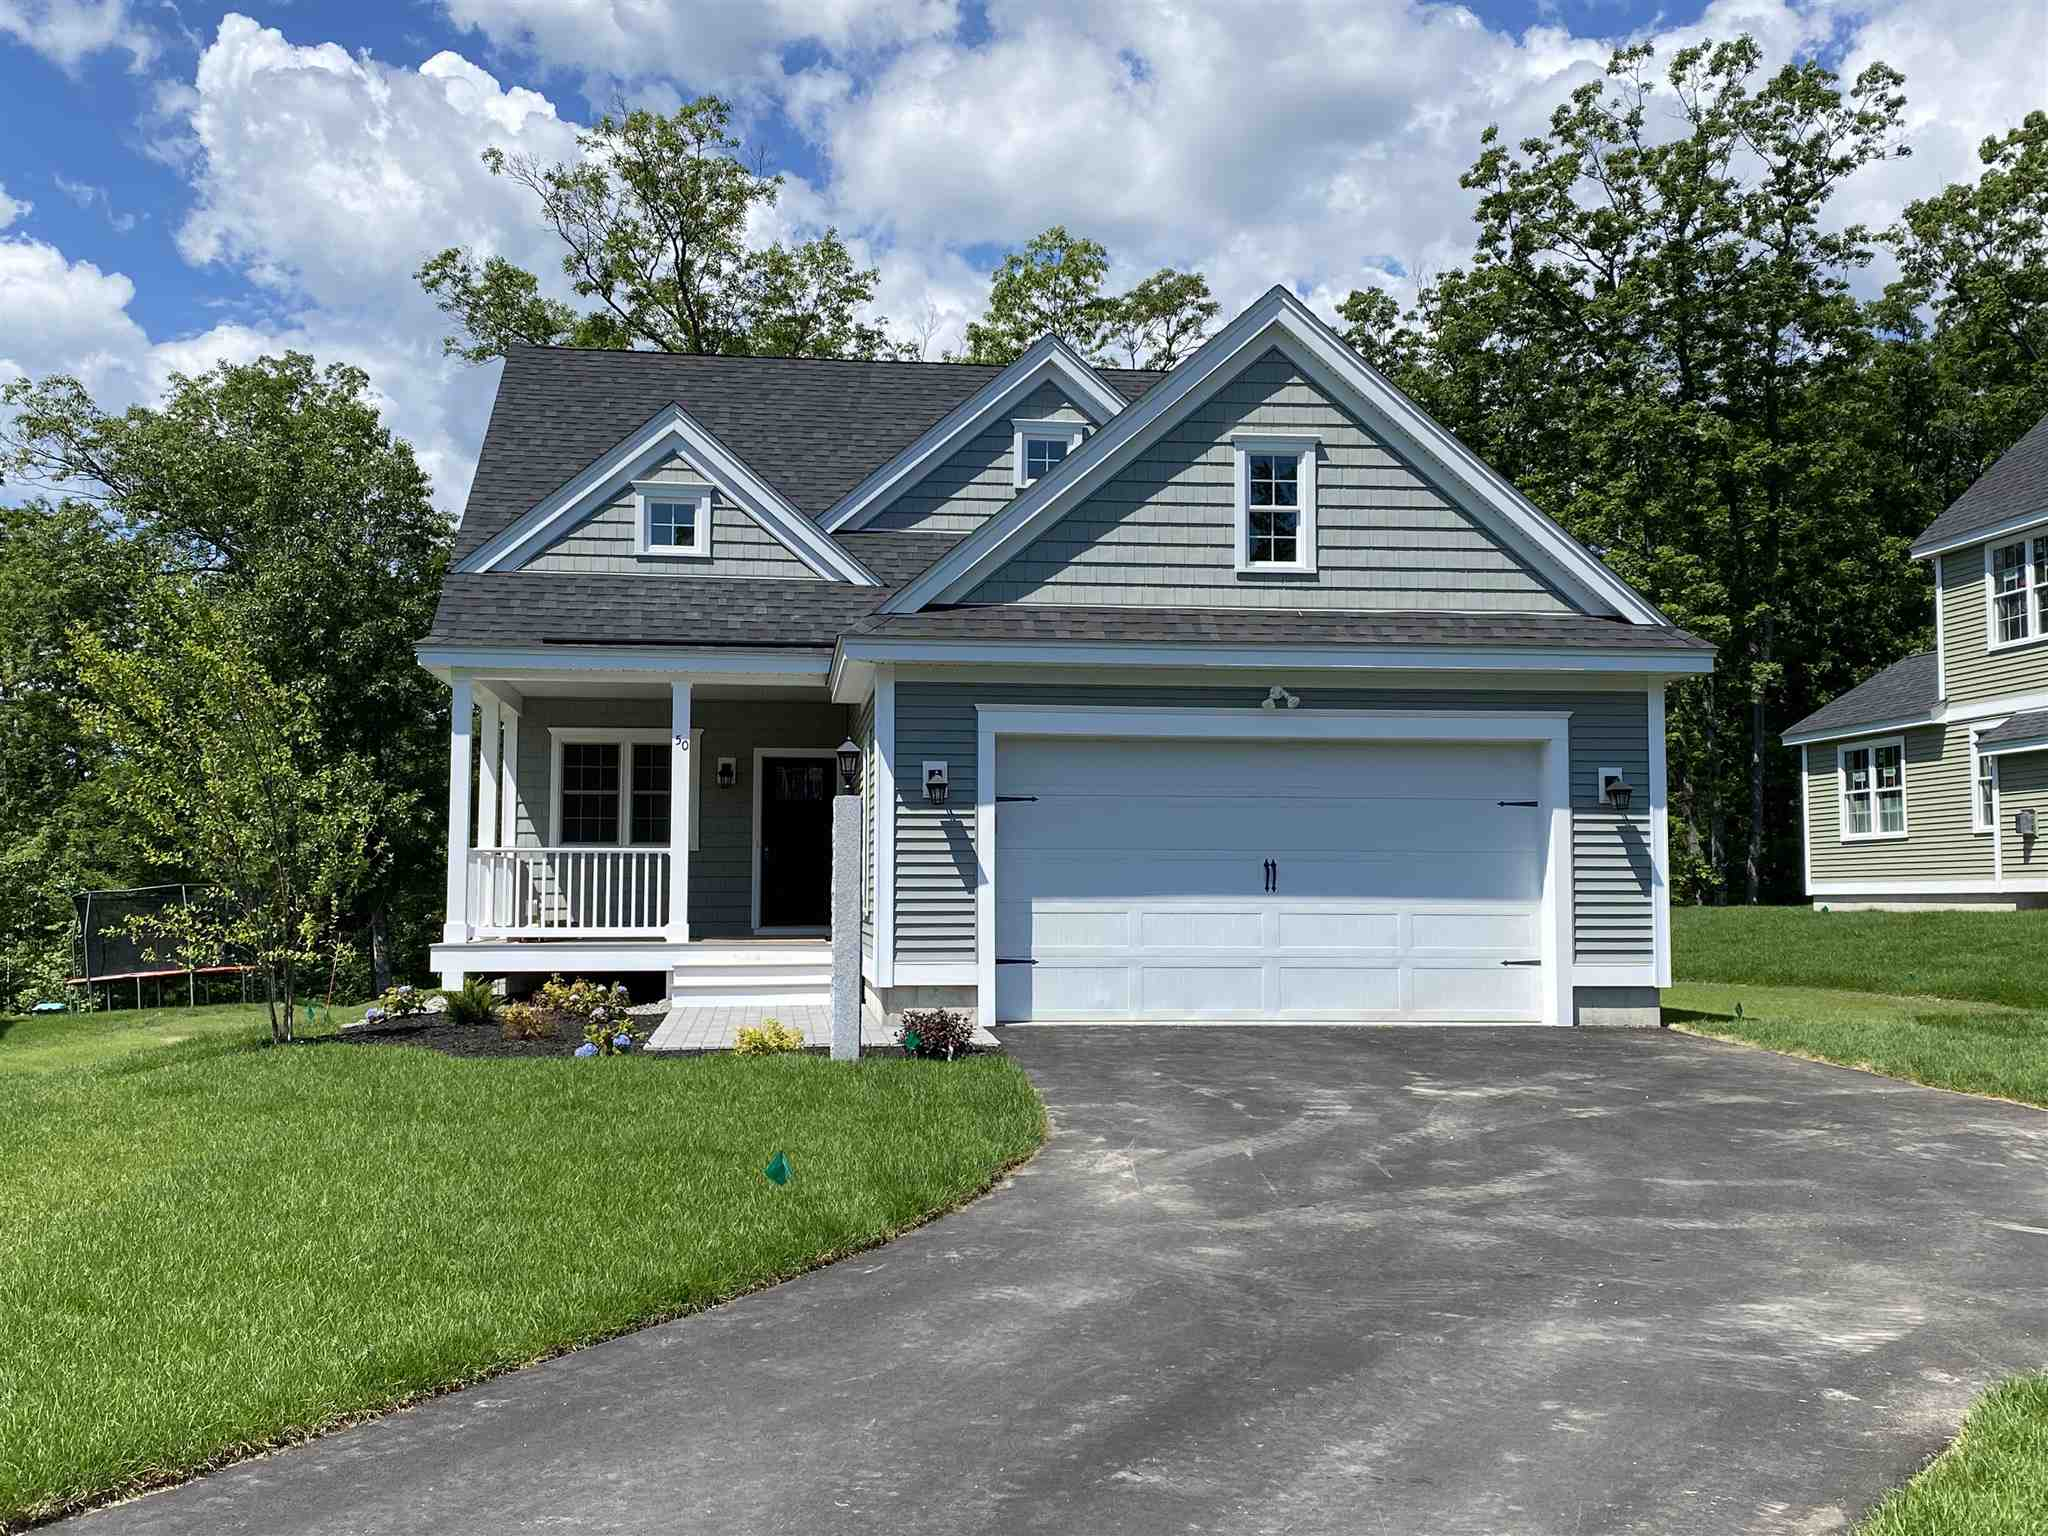 Photo of Lot 129 Lorden Commons Londonderry NH 03053